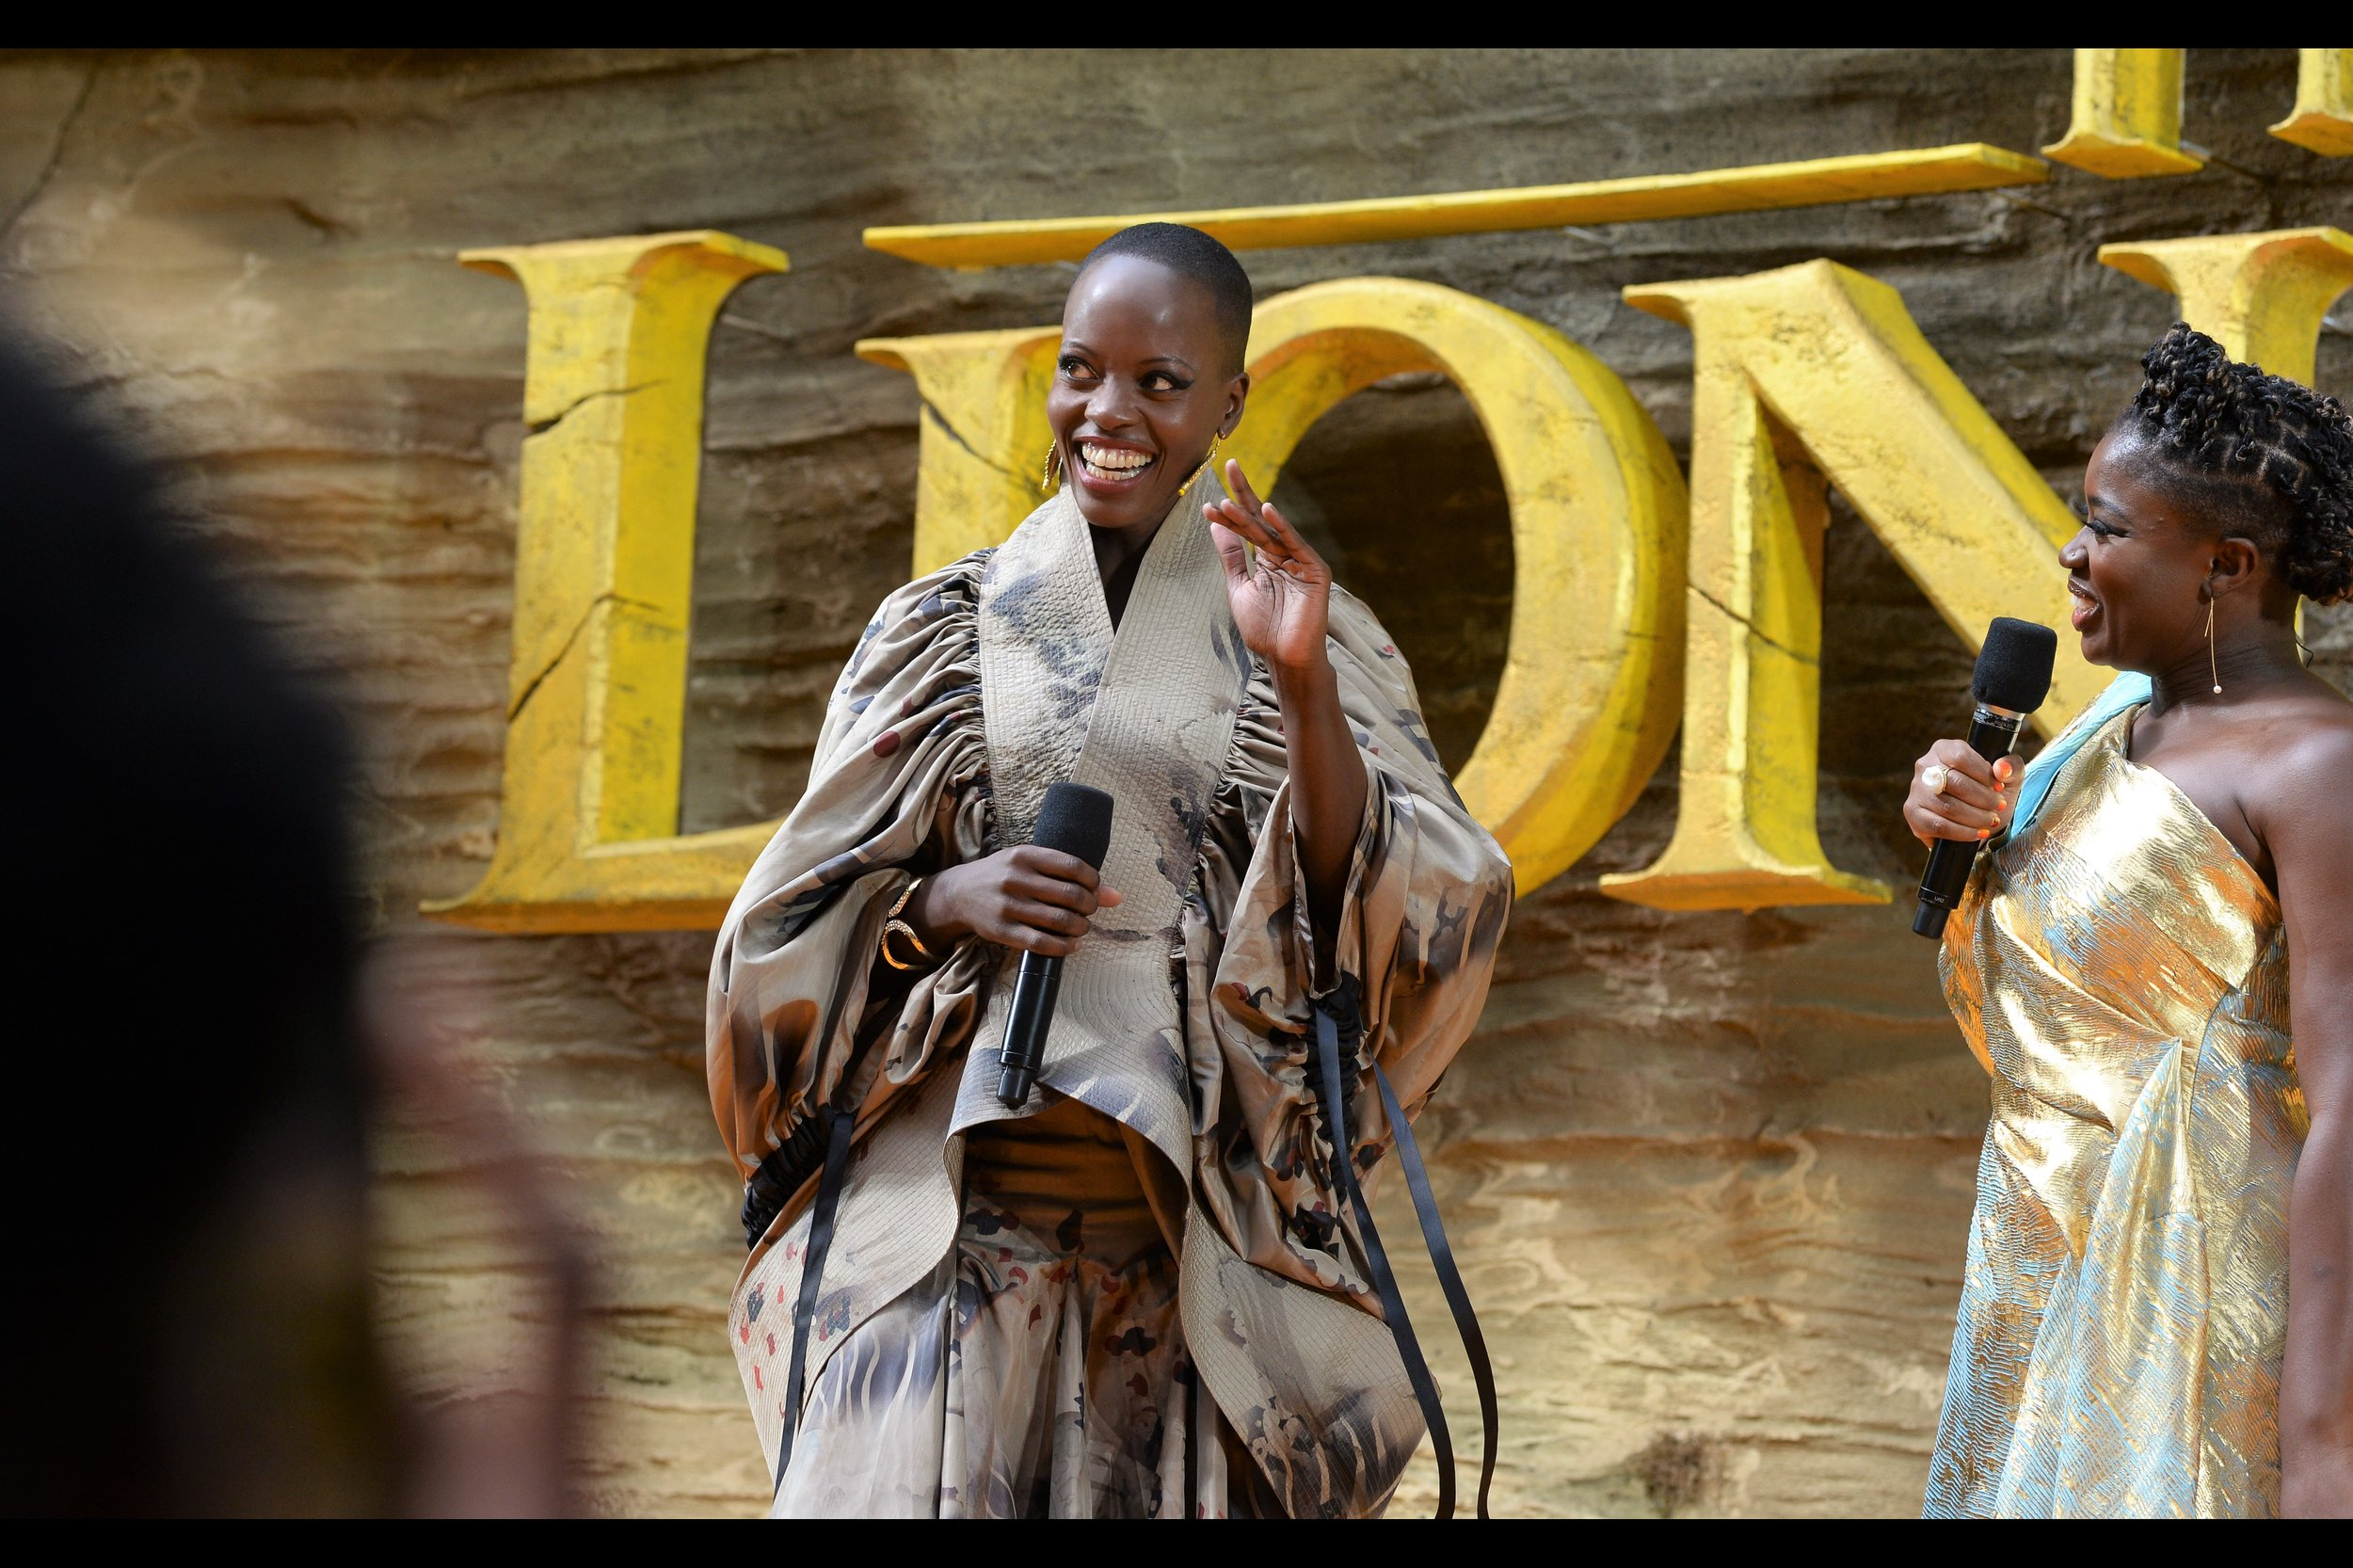 """Okay, I'll smile. But mainly because I also have money riding on that bet you placed""  Florence Kasumba is a German-based actress who'd actually had a year of experience playing her character on stage before playing it in this film."